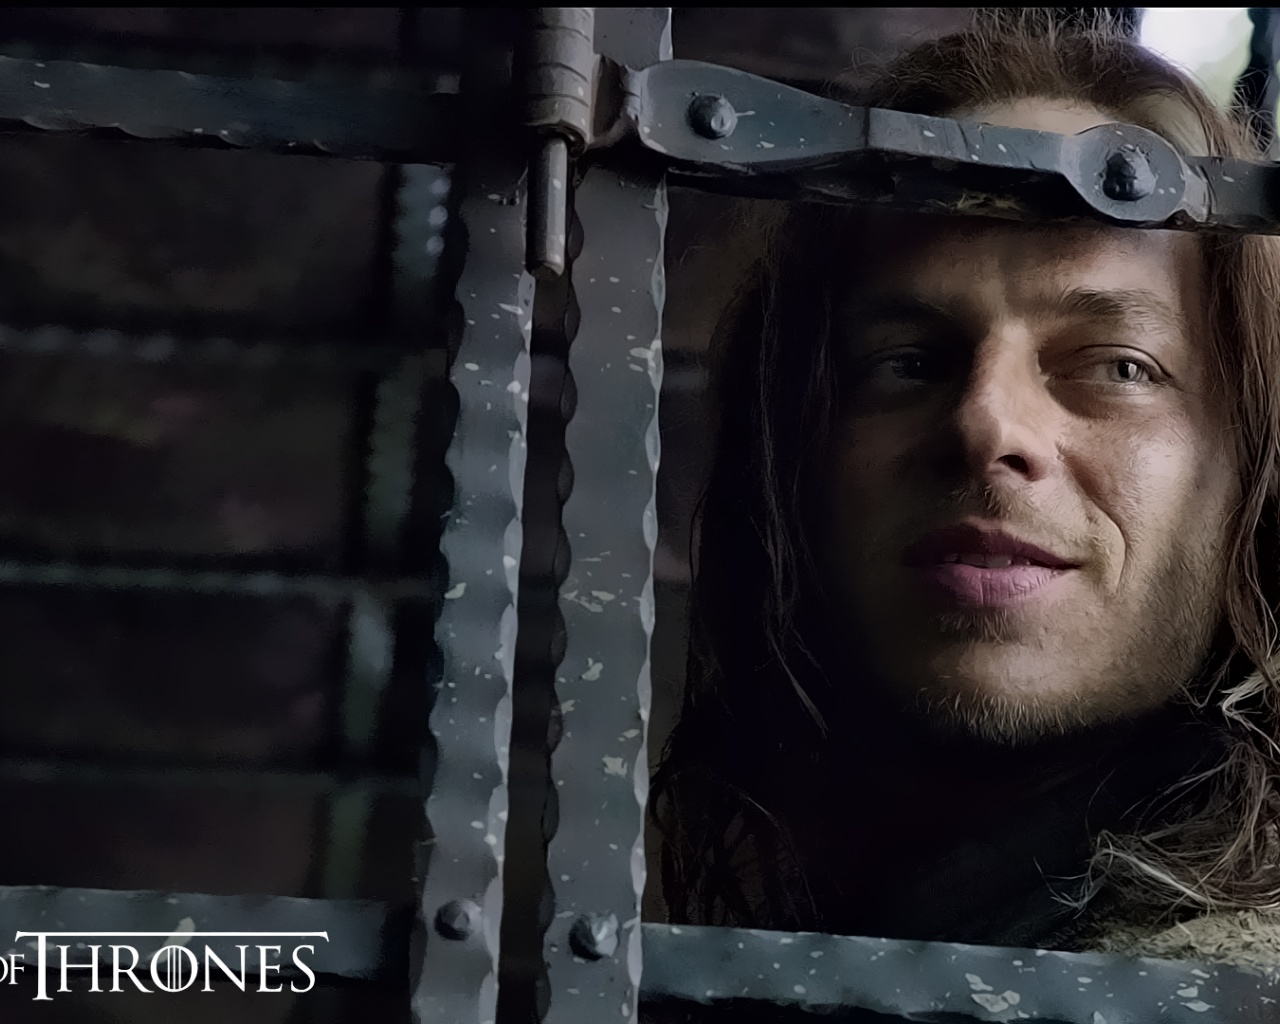 1280 1772 1280x1024 Jaqen Hghar Game of Thrones desktop PC 1280x1024